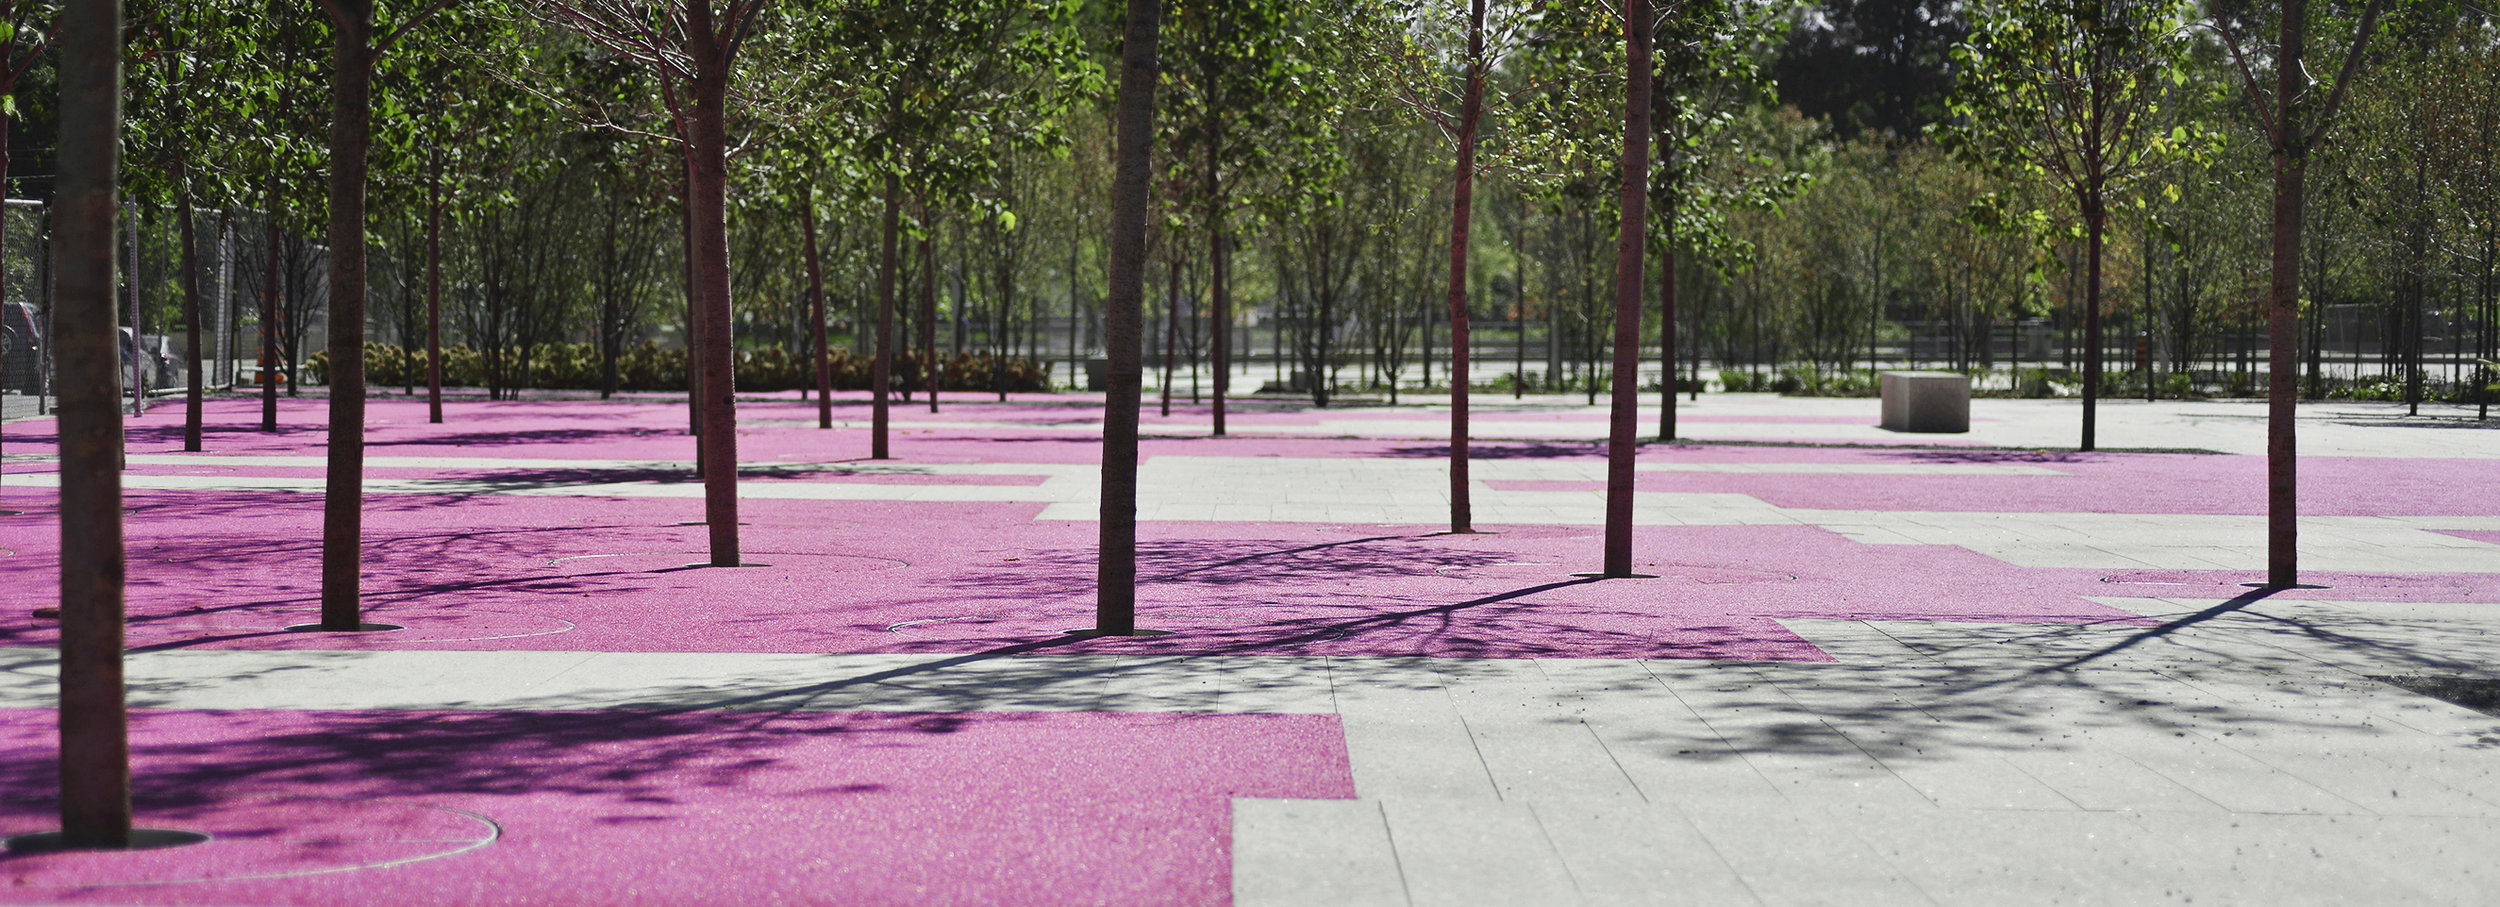 June Callwood Park - Granite and Trees in Pink rubber paving